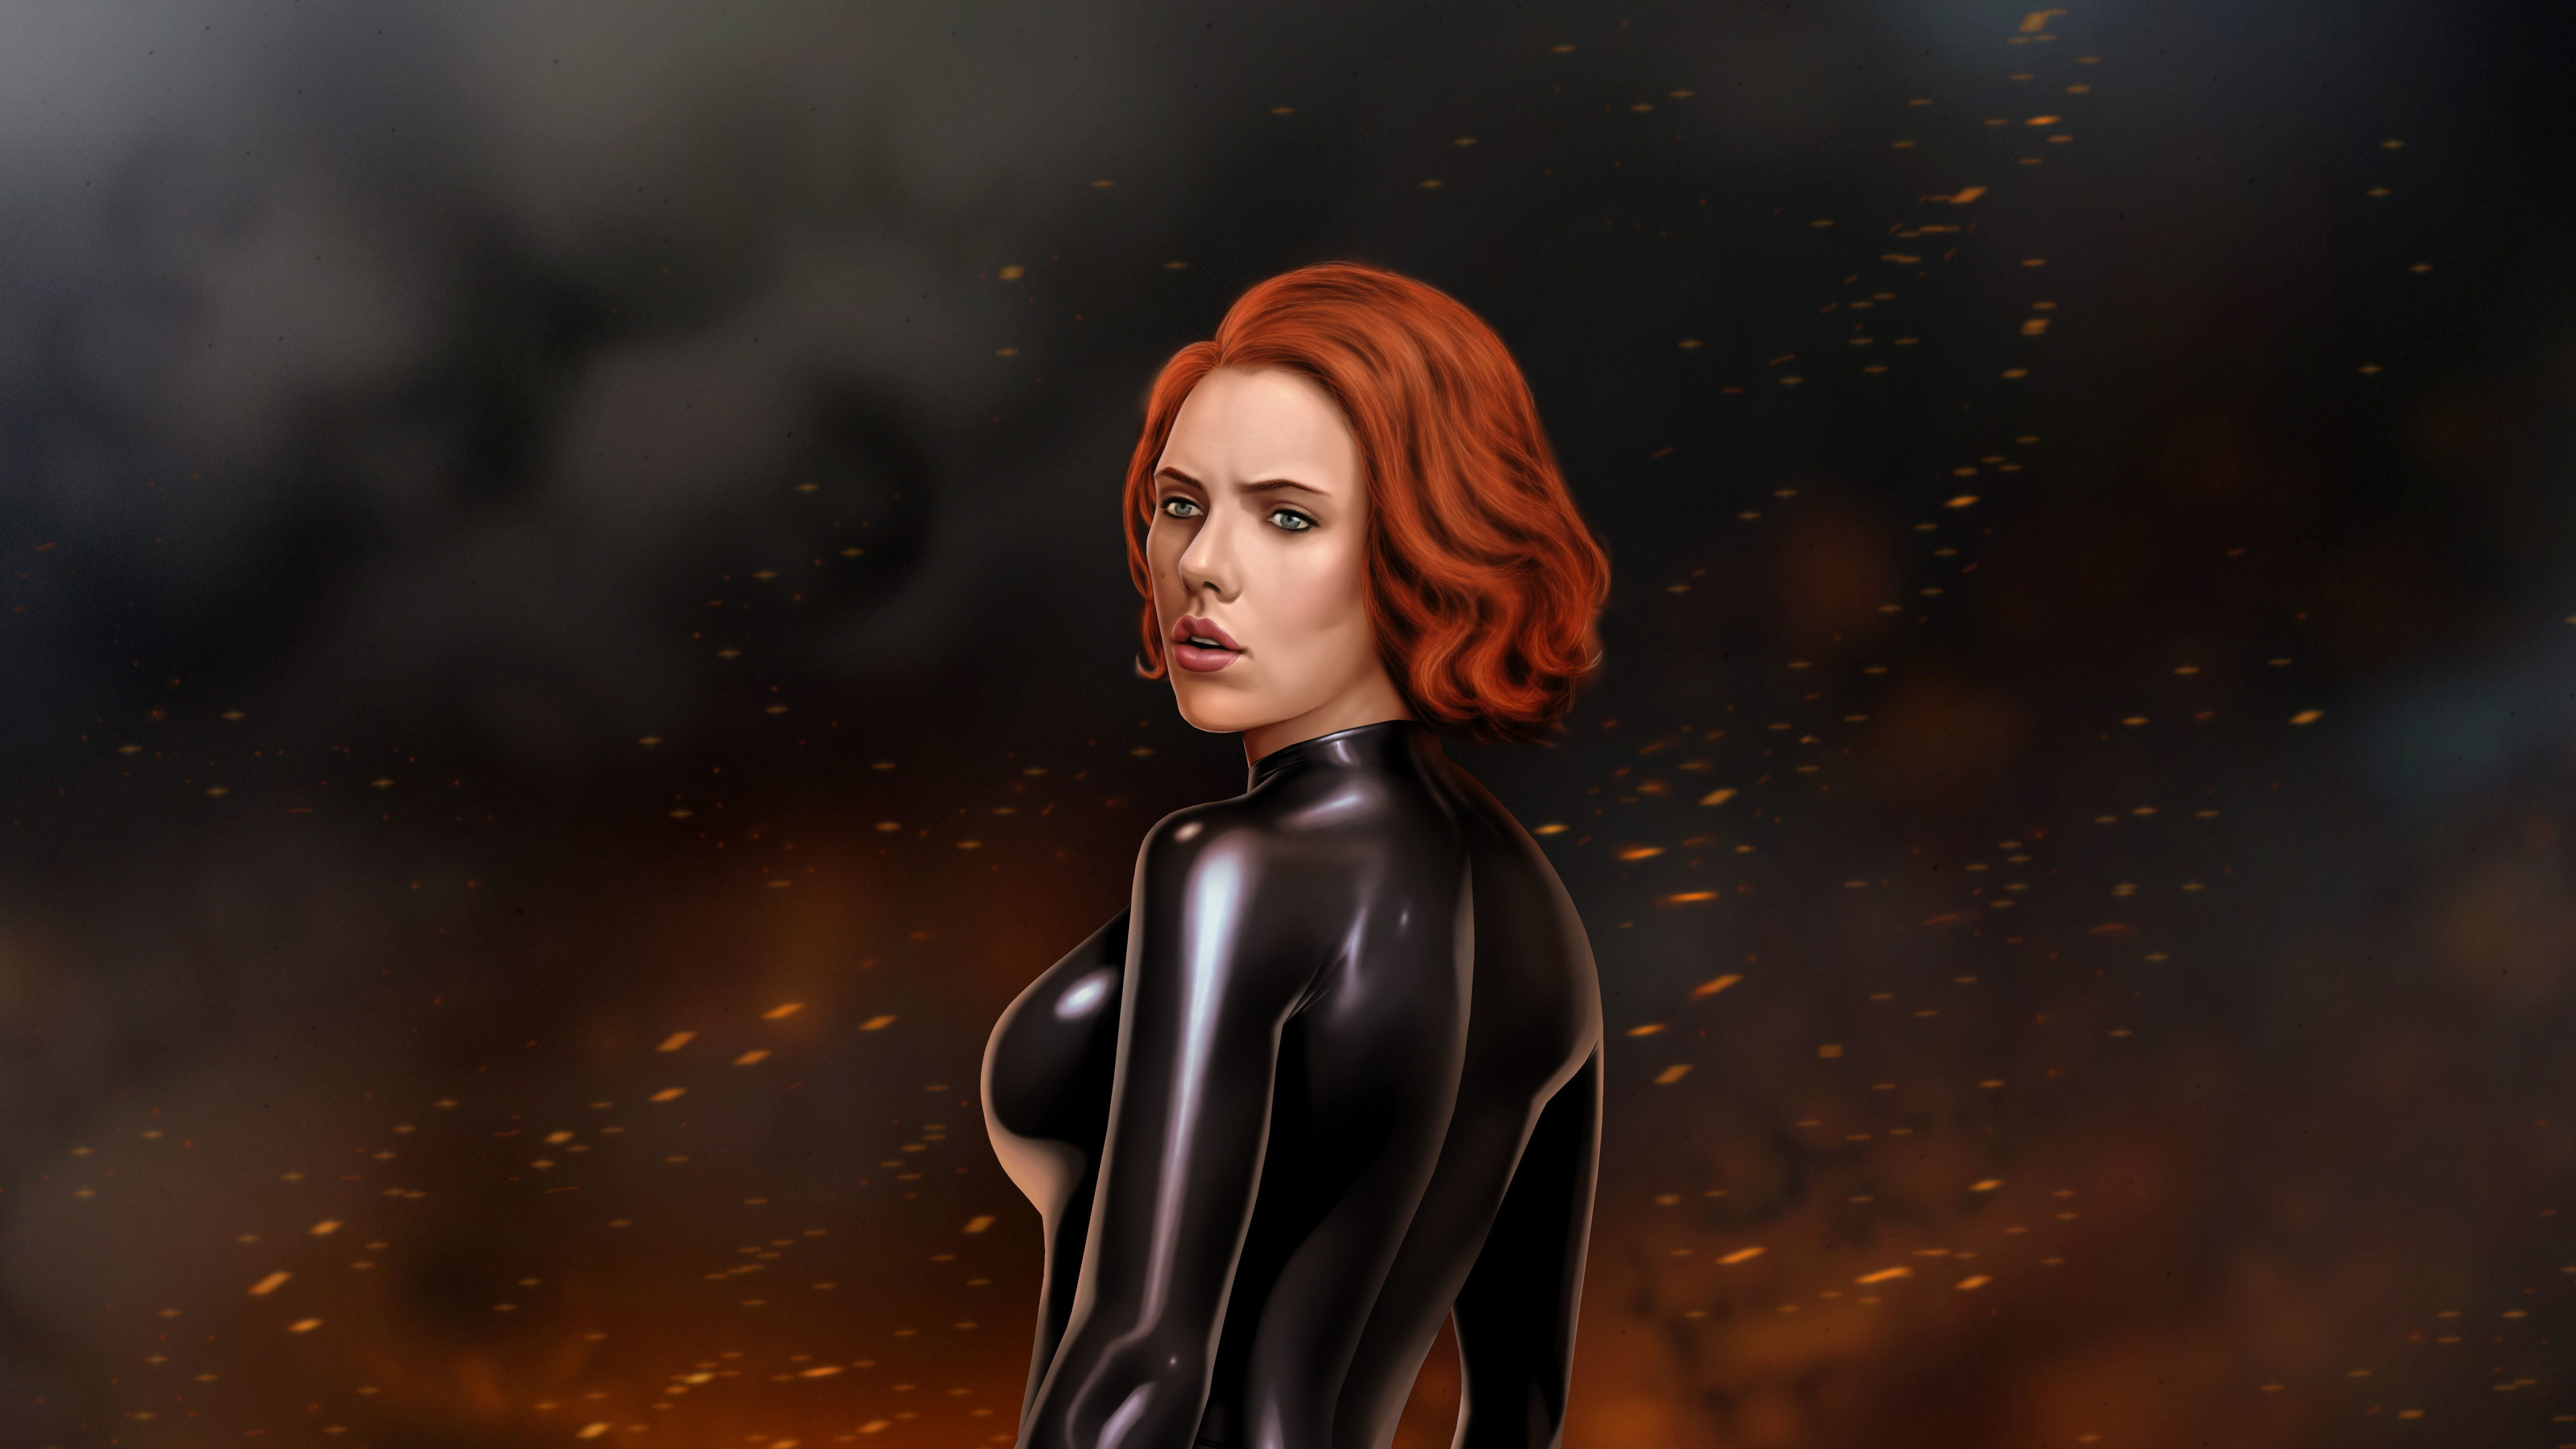 black widow digital artwork 4k 1555206628 - Black Widow Digital Artwork 4k - superheroes wallpapers, hd-wallpapers, digital art wallpapers, deviantart wallpapers, black widow wallpapers, artwork wallpapers, 5k wallpapers, 4k-wallpapers